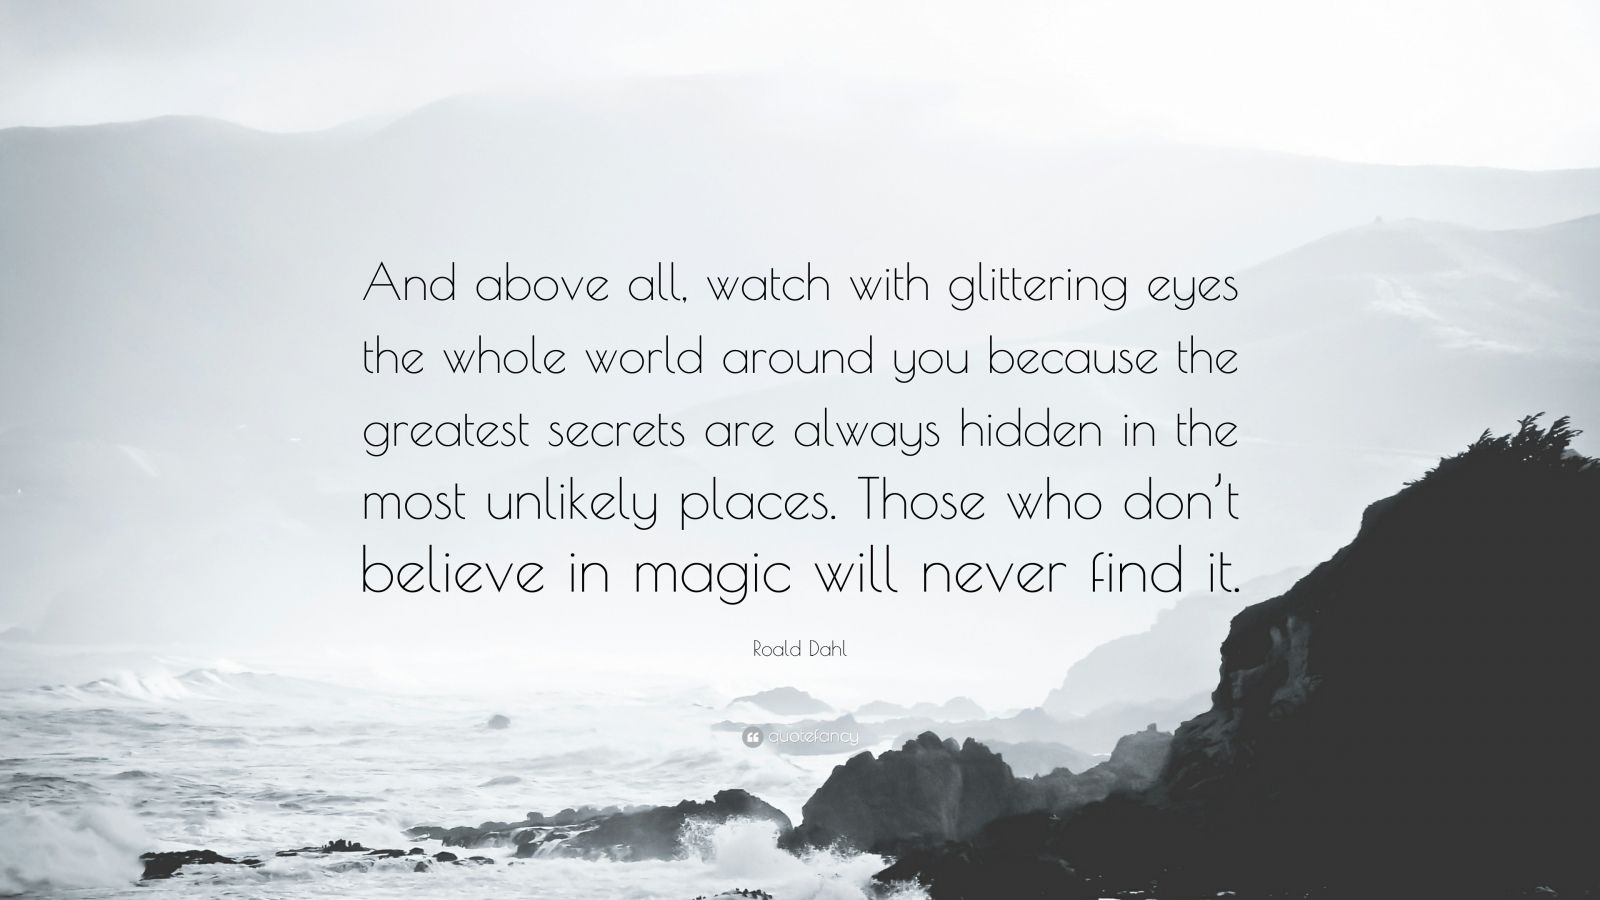 """Roald Dahl Quote: """"And above all, watch with glittering eyes the whole world around you because the greatest secrets are always hidden in the most unlikely places. Those who don't believe in magic will never find it."""""""